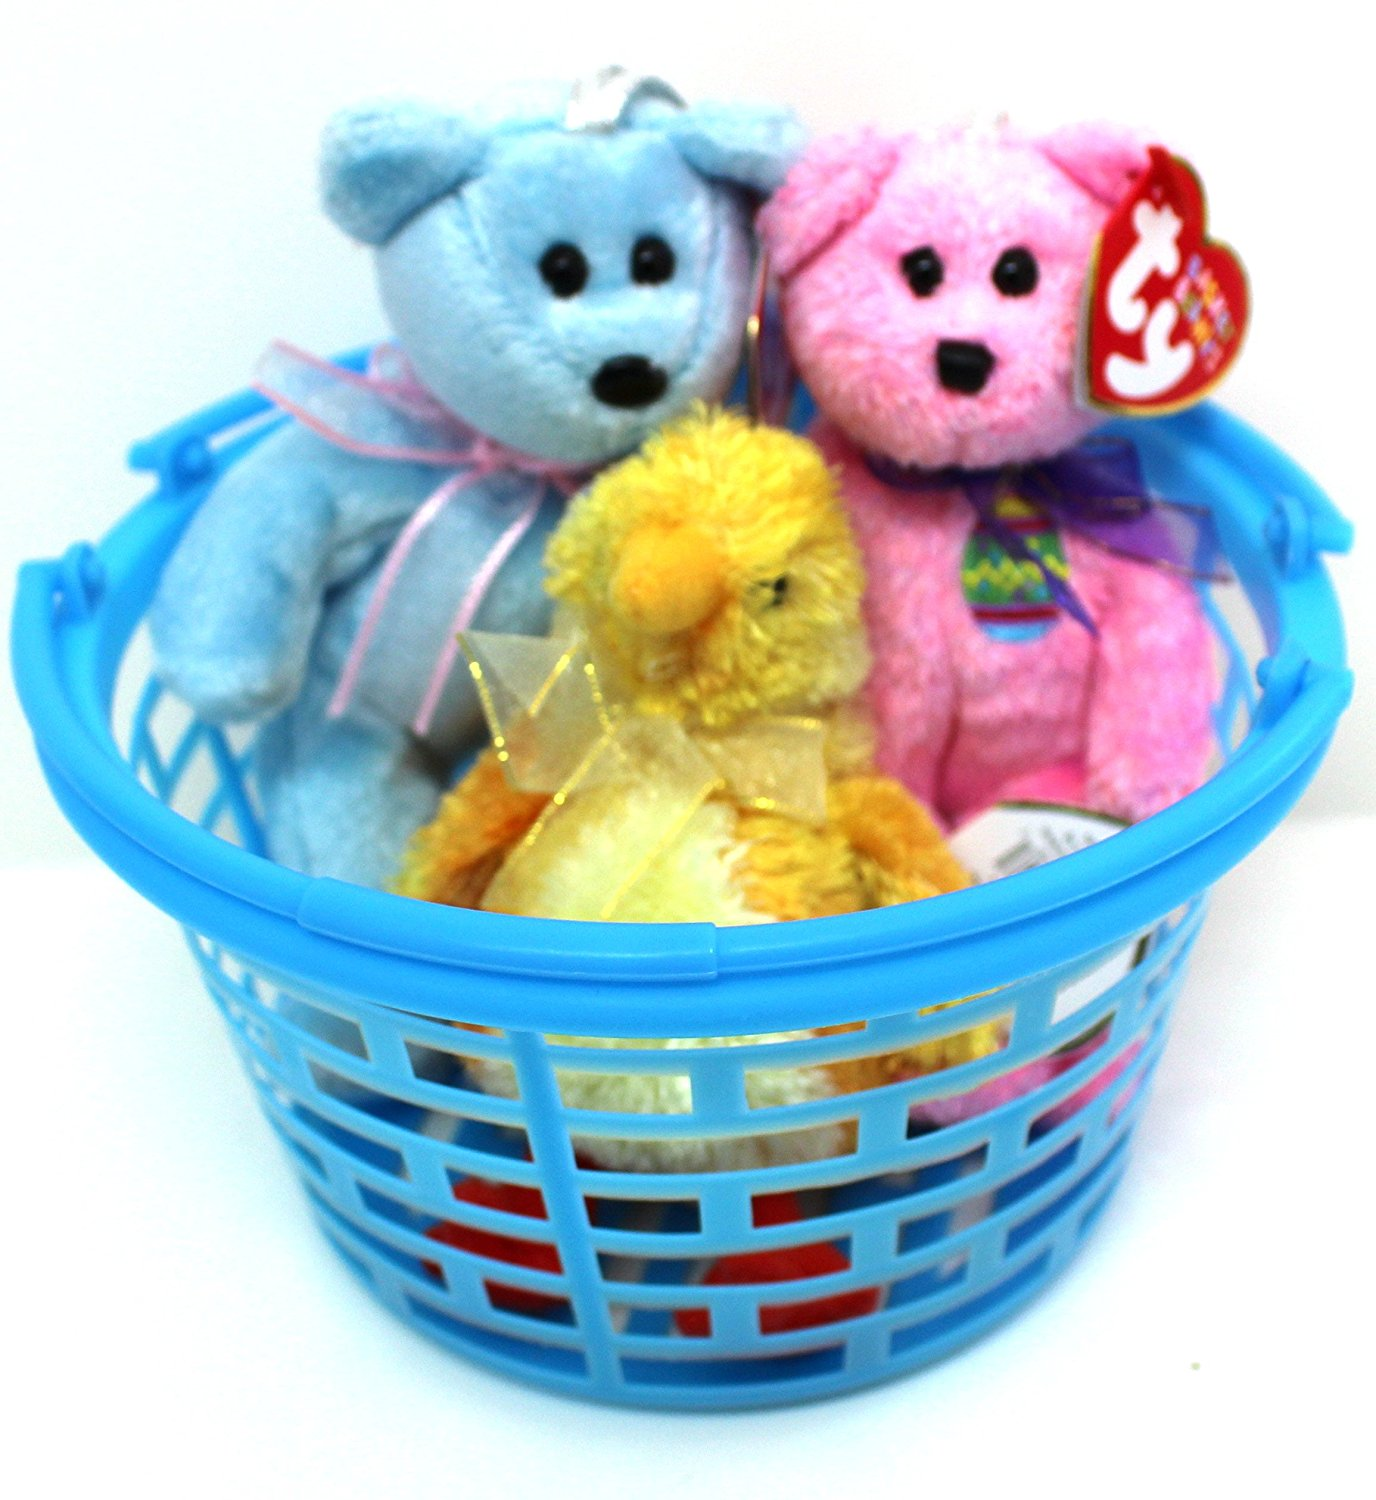 Easter Basket of 3, Adorable ty Basket Beanies - Just in time for Easter - All part of the Basket Beanie Collection - Bunny, Bear, or Chick (beanie and color chosen at random)